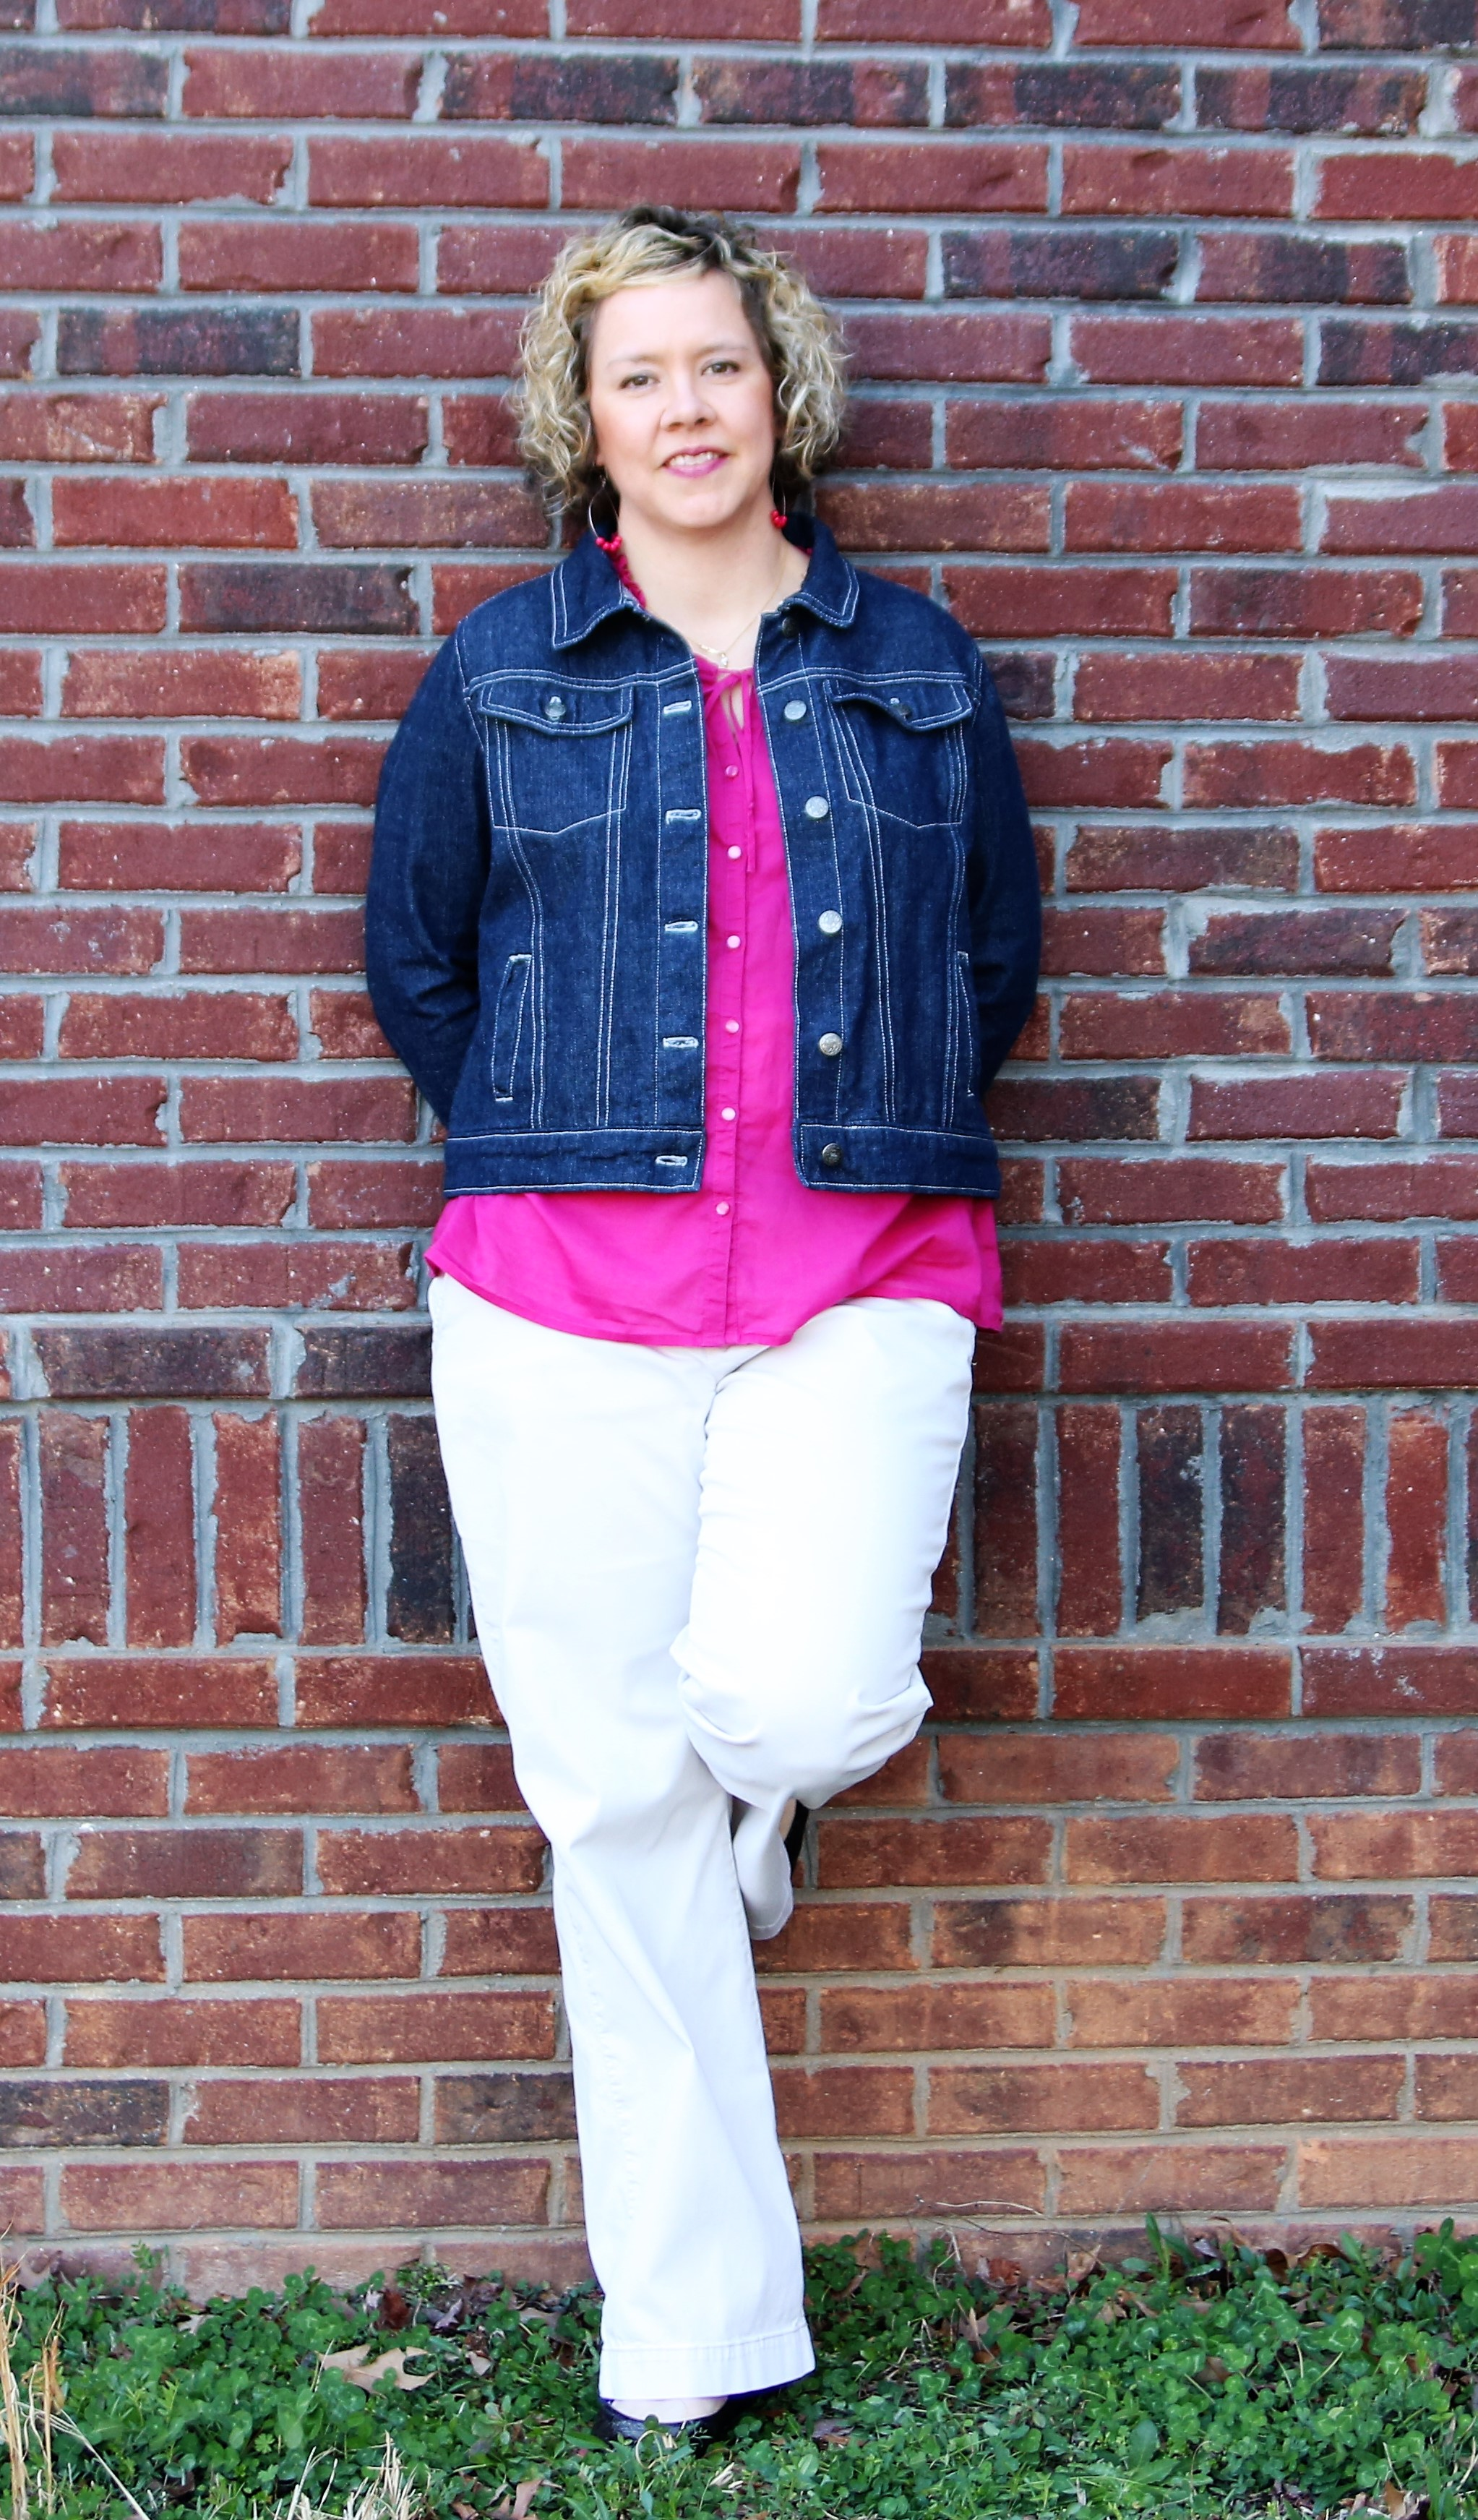 Now that I've been sewing for myself for almost a year, I keep thinking it's time to jump in and start blogging about my makes. The Hampton Jean Jacket by  Alina Design Co . was such an epic project in my sewing journey, that I knew it would be my first me-made sewing blog post.